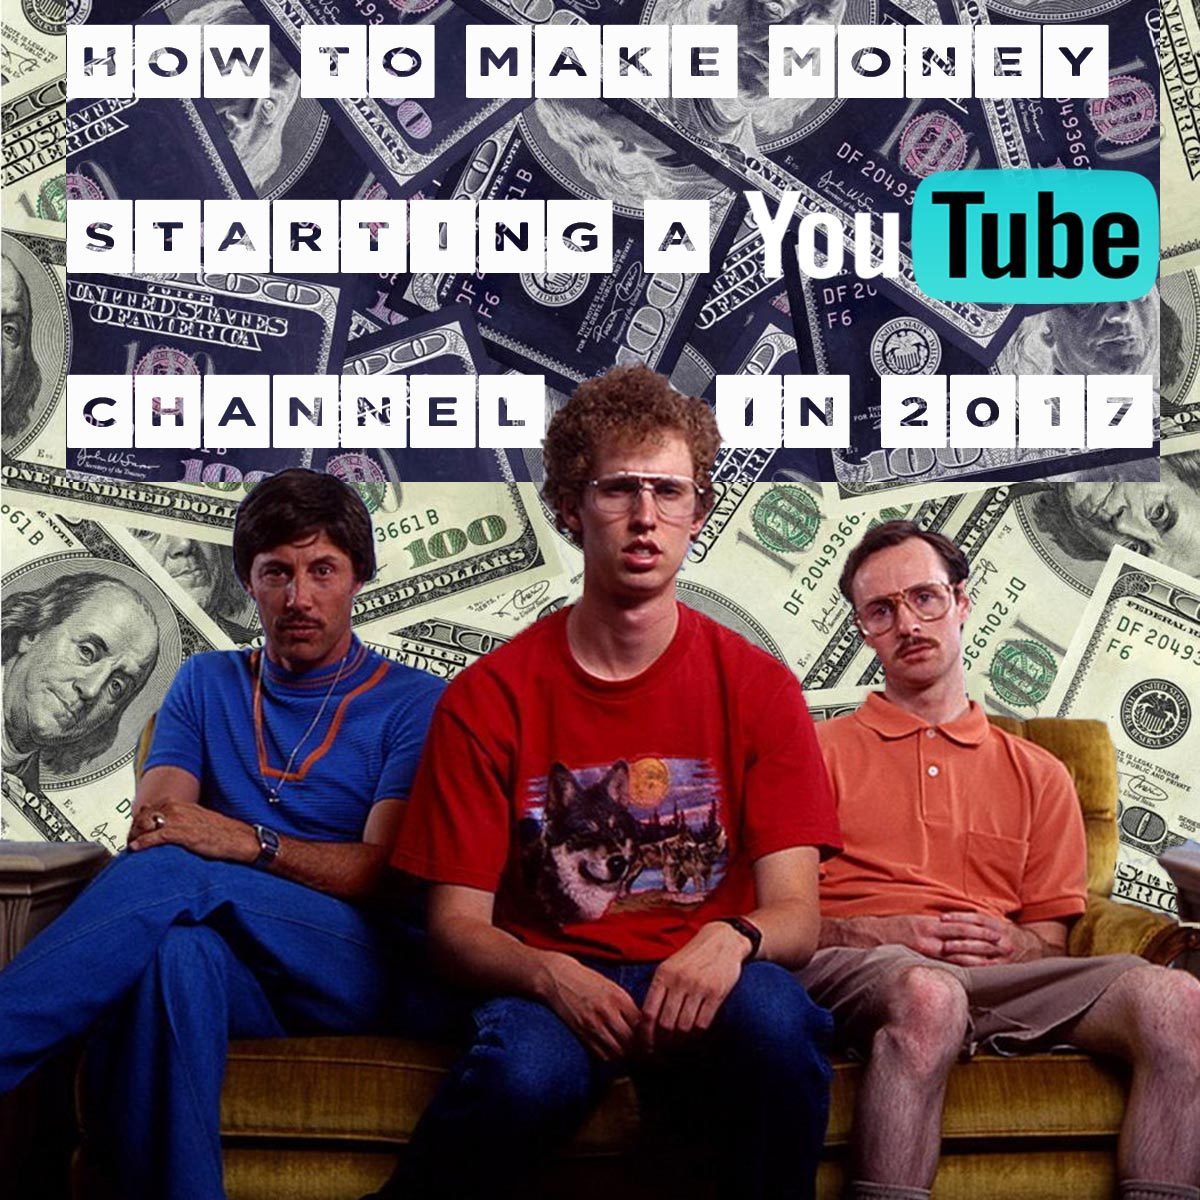 How to Make Money Starting a YouTube Channel in 2017